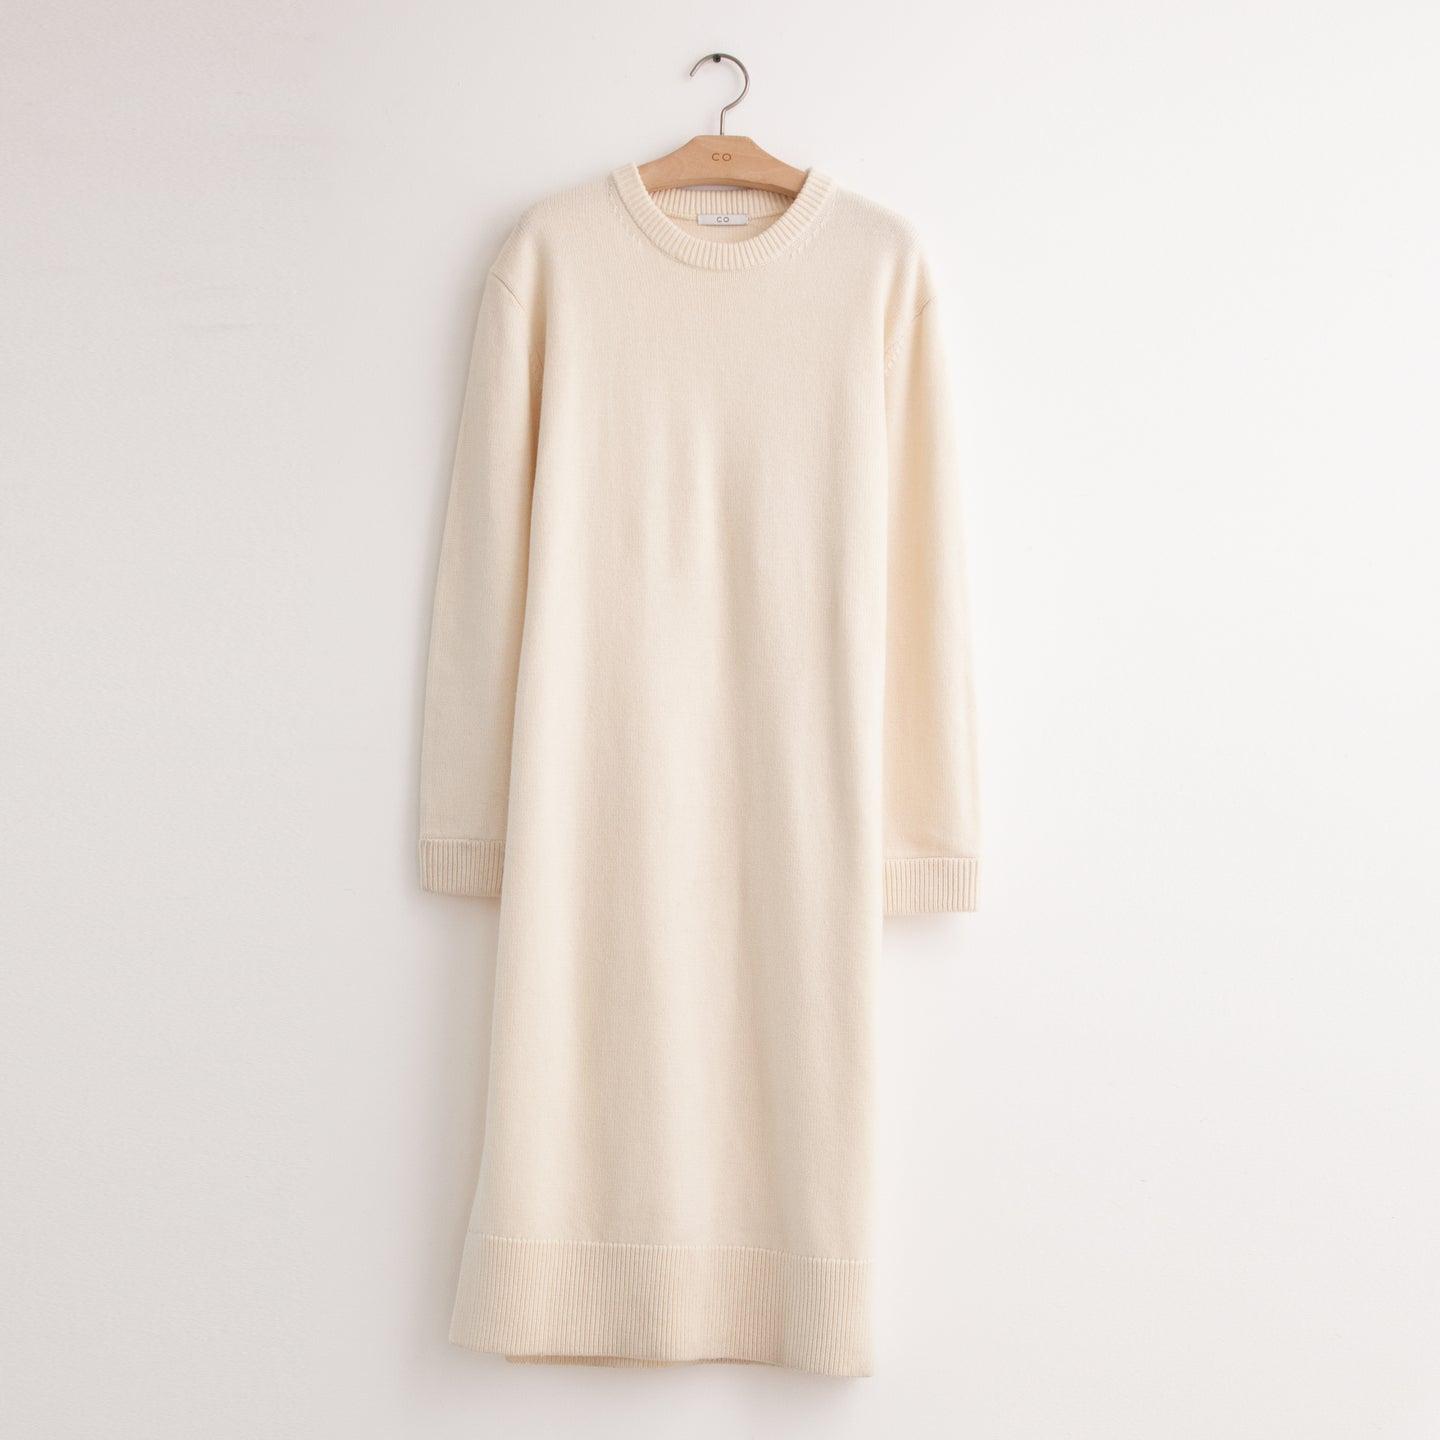 Long sleeve knit shirtdress with side slits in ivory wool - CO